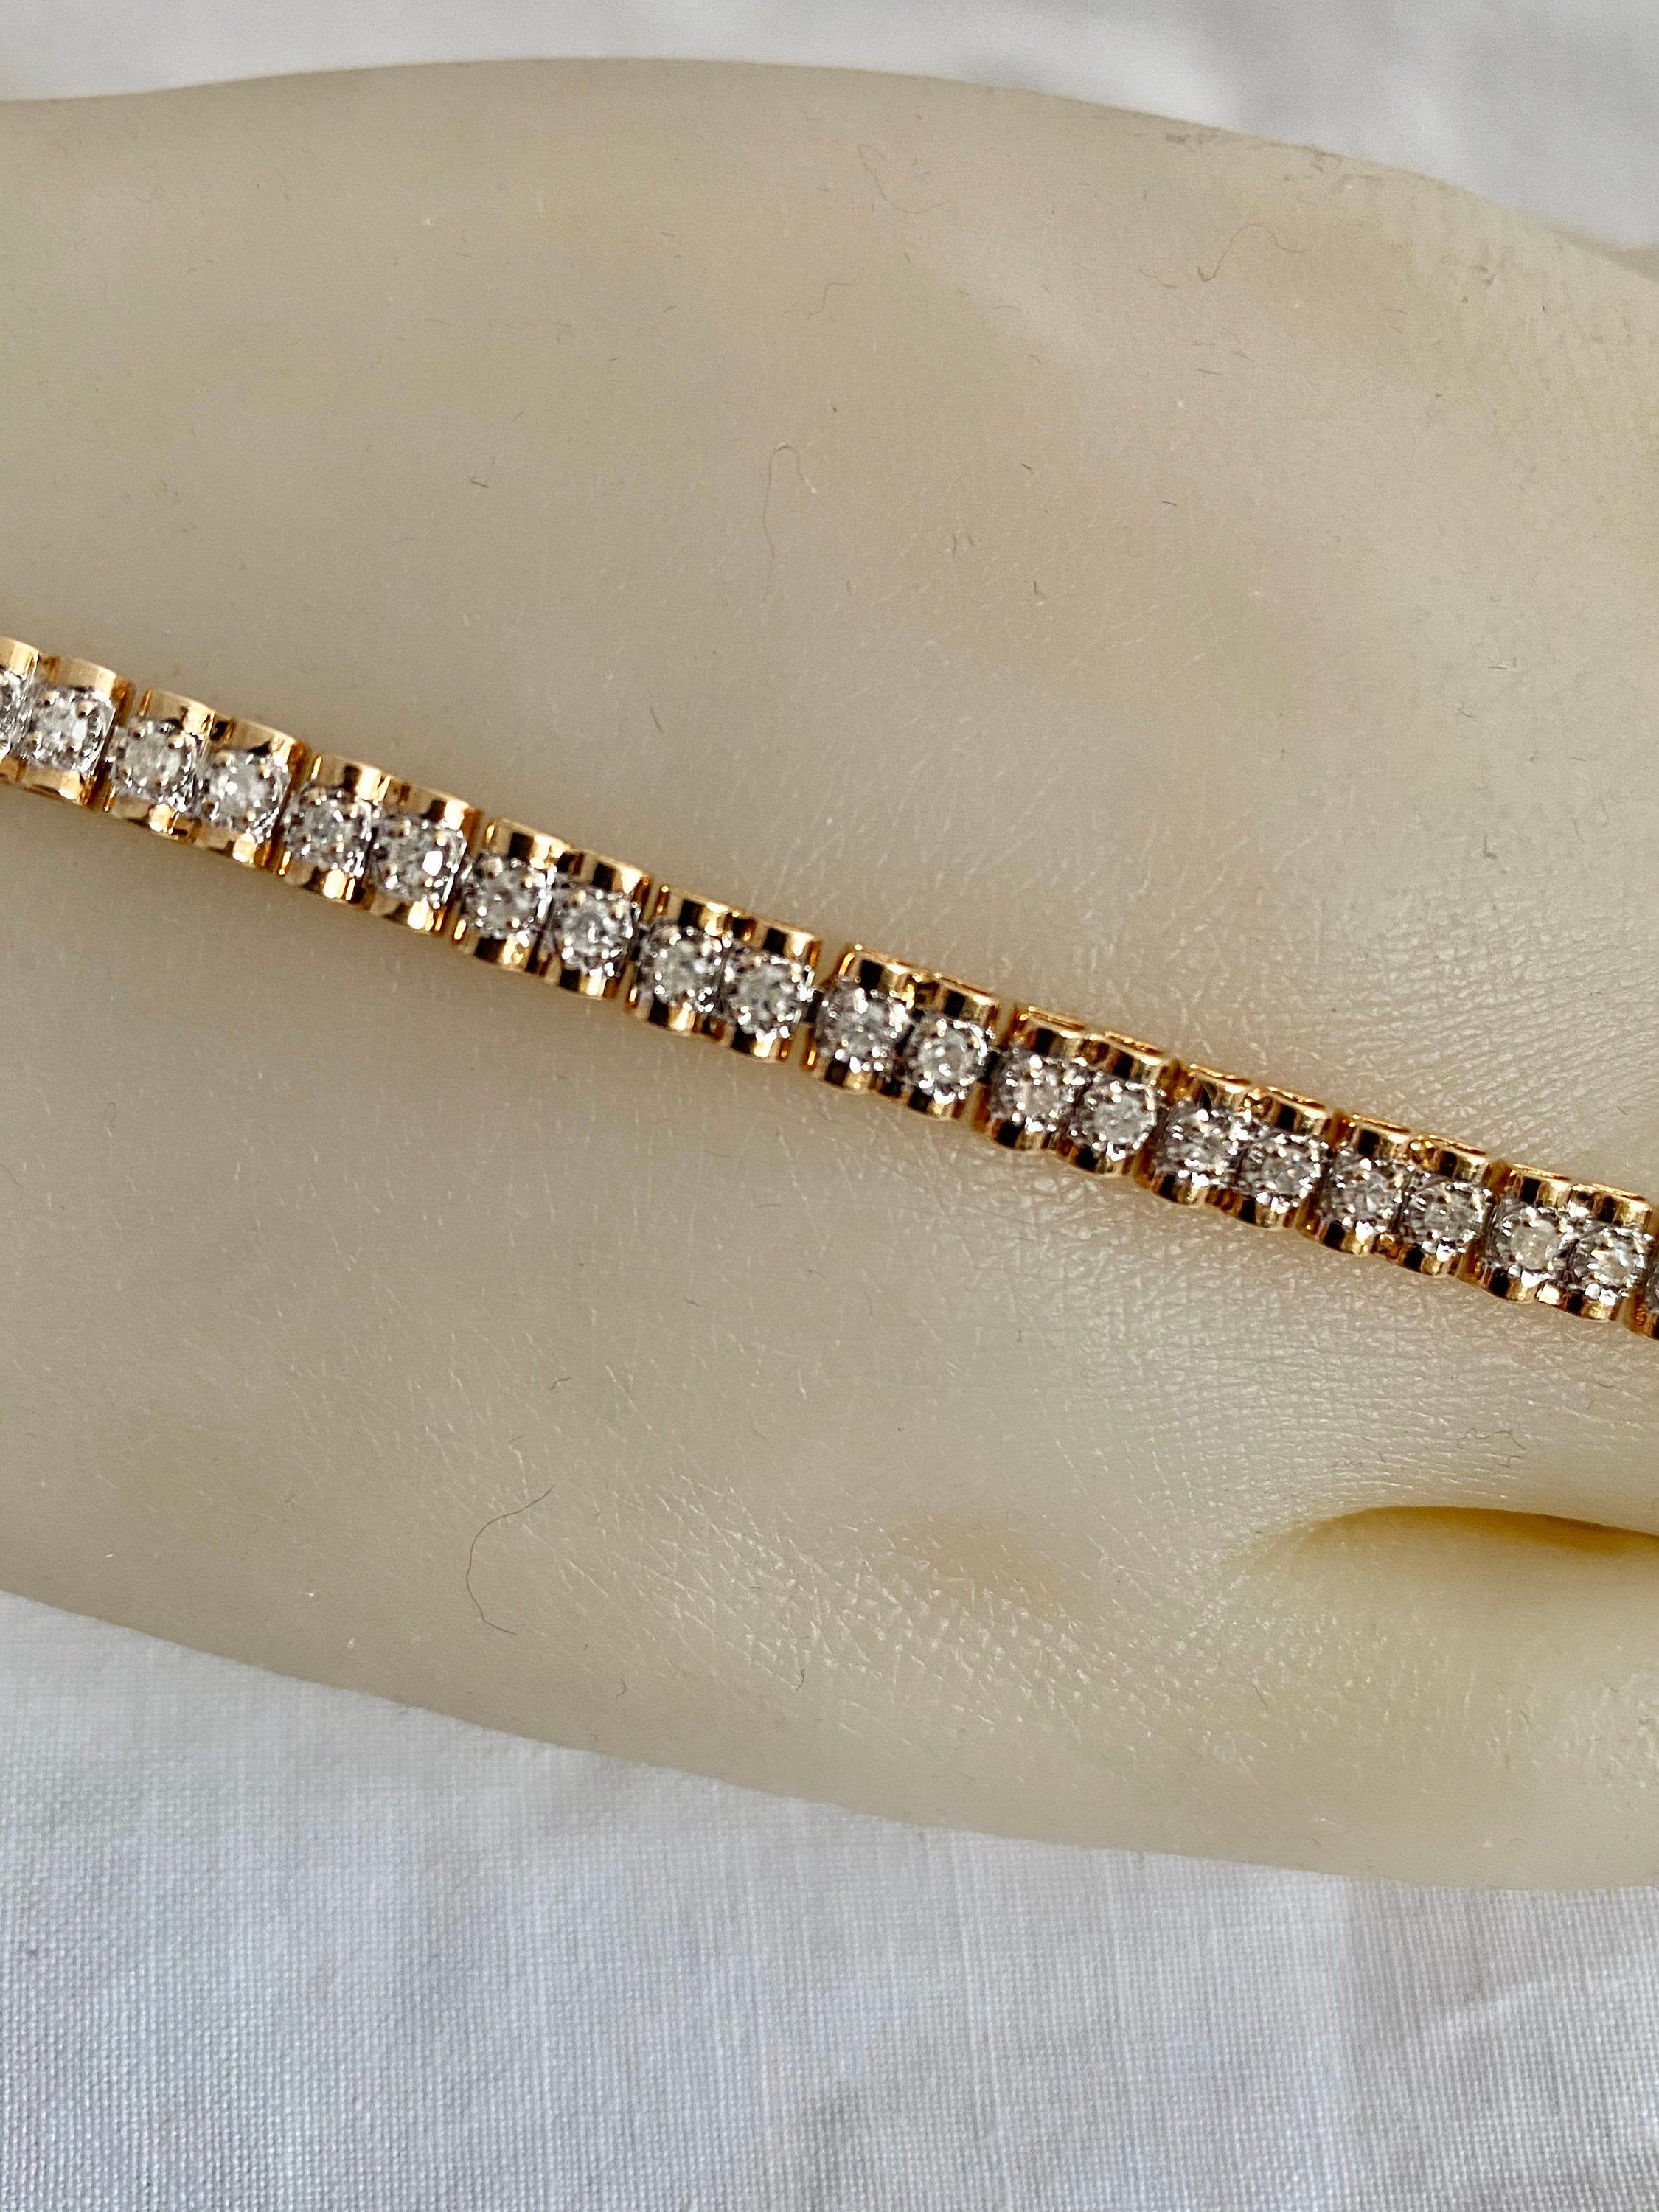 10k Gold 54 Diamonds Tennis Bracelet Unique Design Done Barrel Etsy White Gold Bracelet Tennis Bracelet Diamond Bracelets